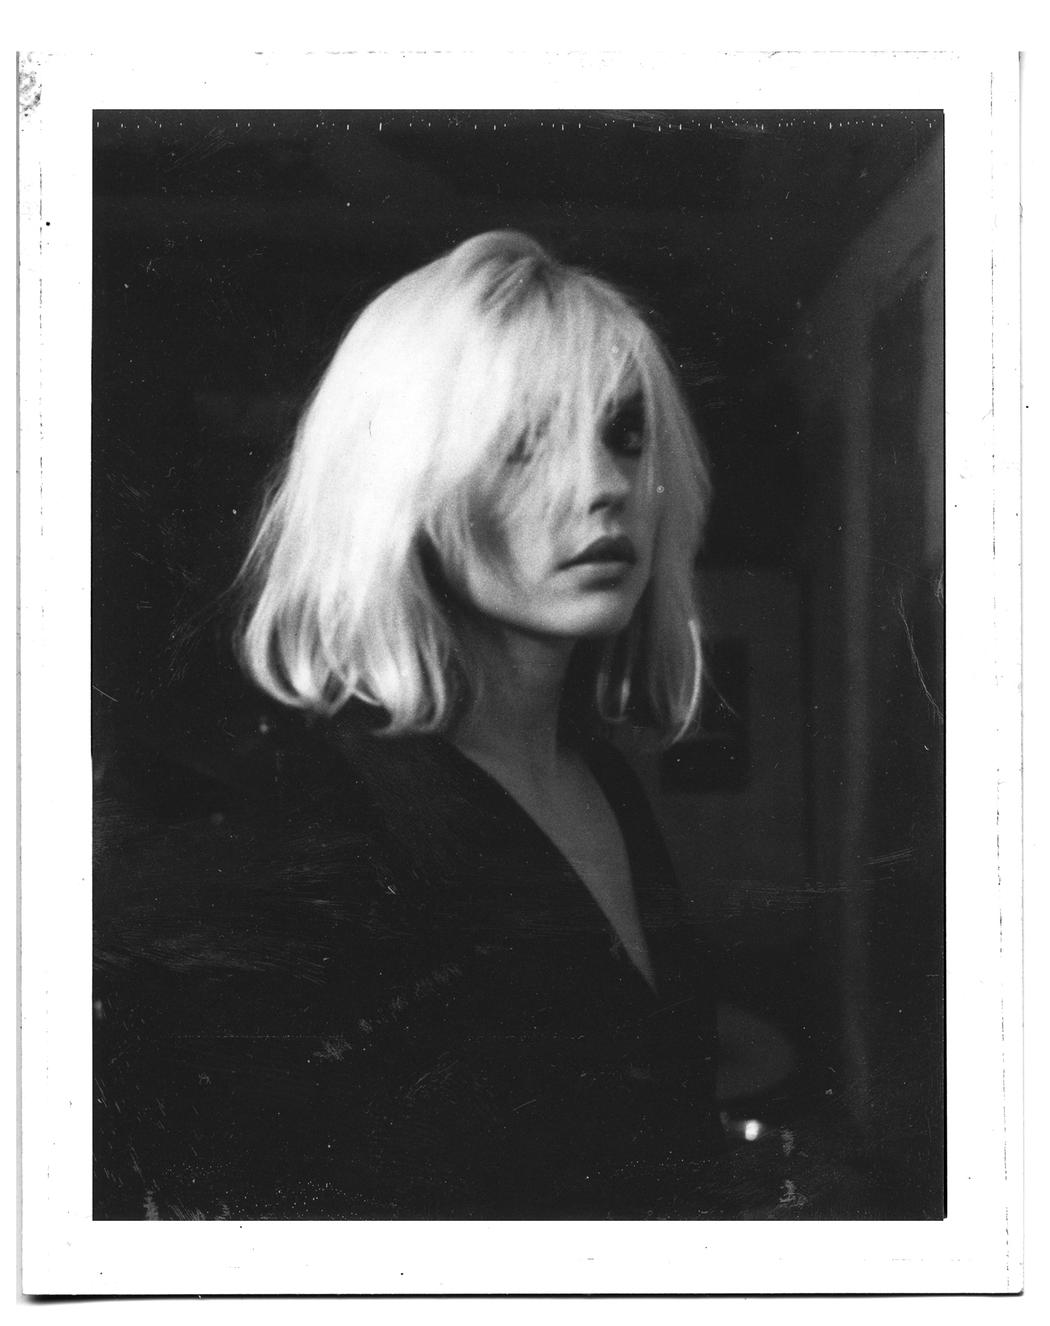 1510580956095-JULIA-GORTON-debbie-harry-polaroid.jpg